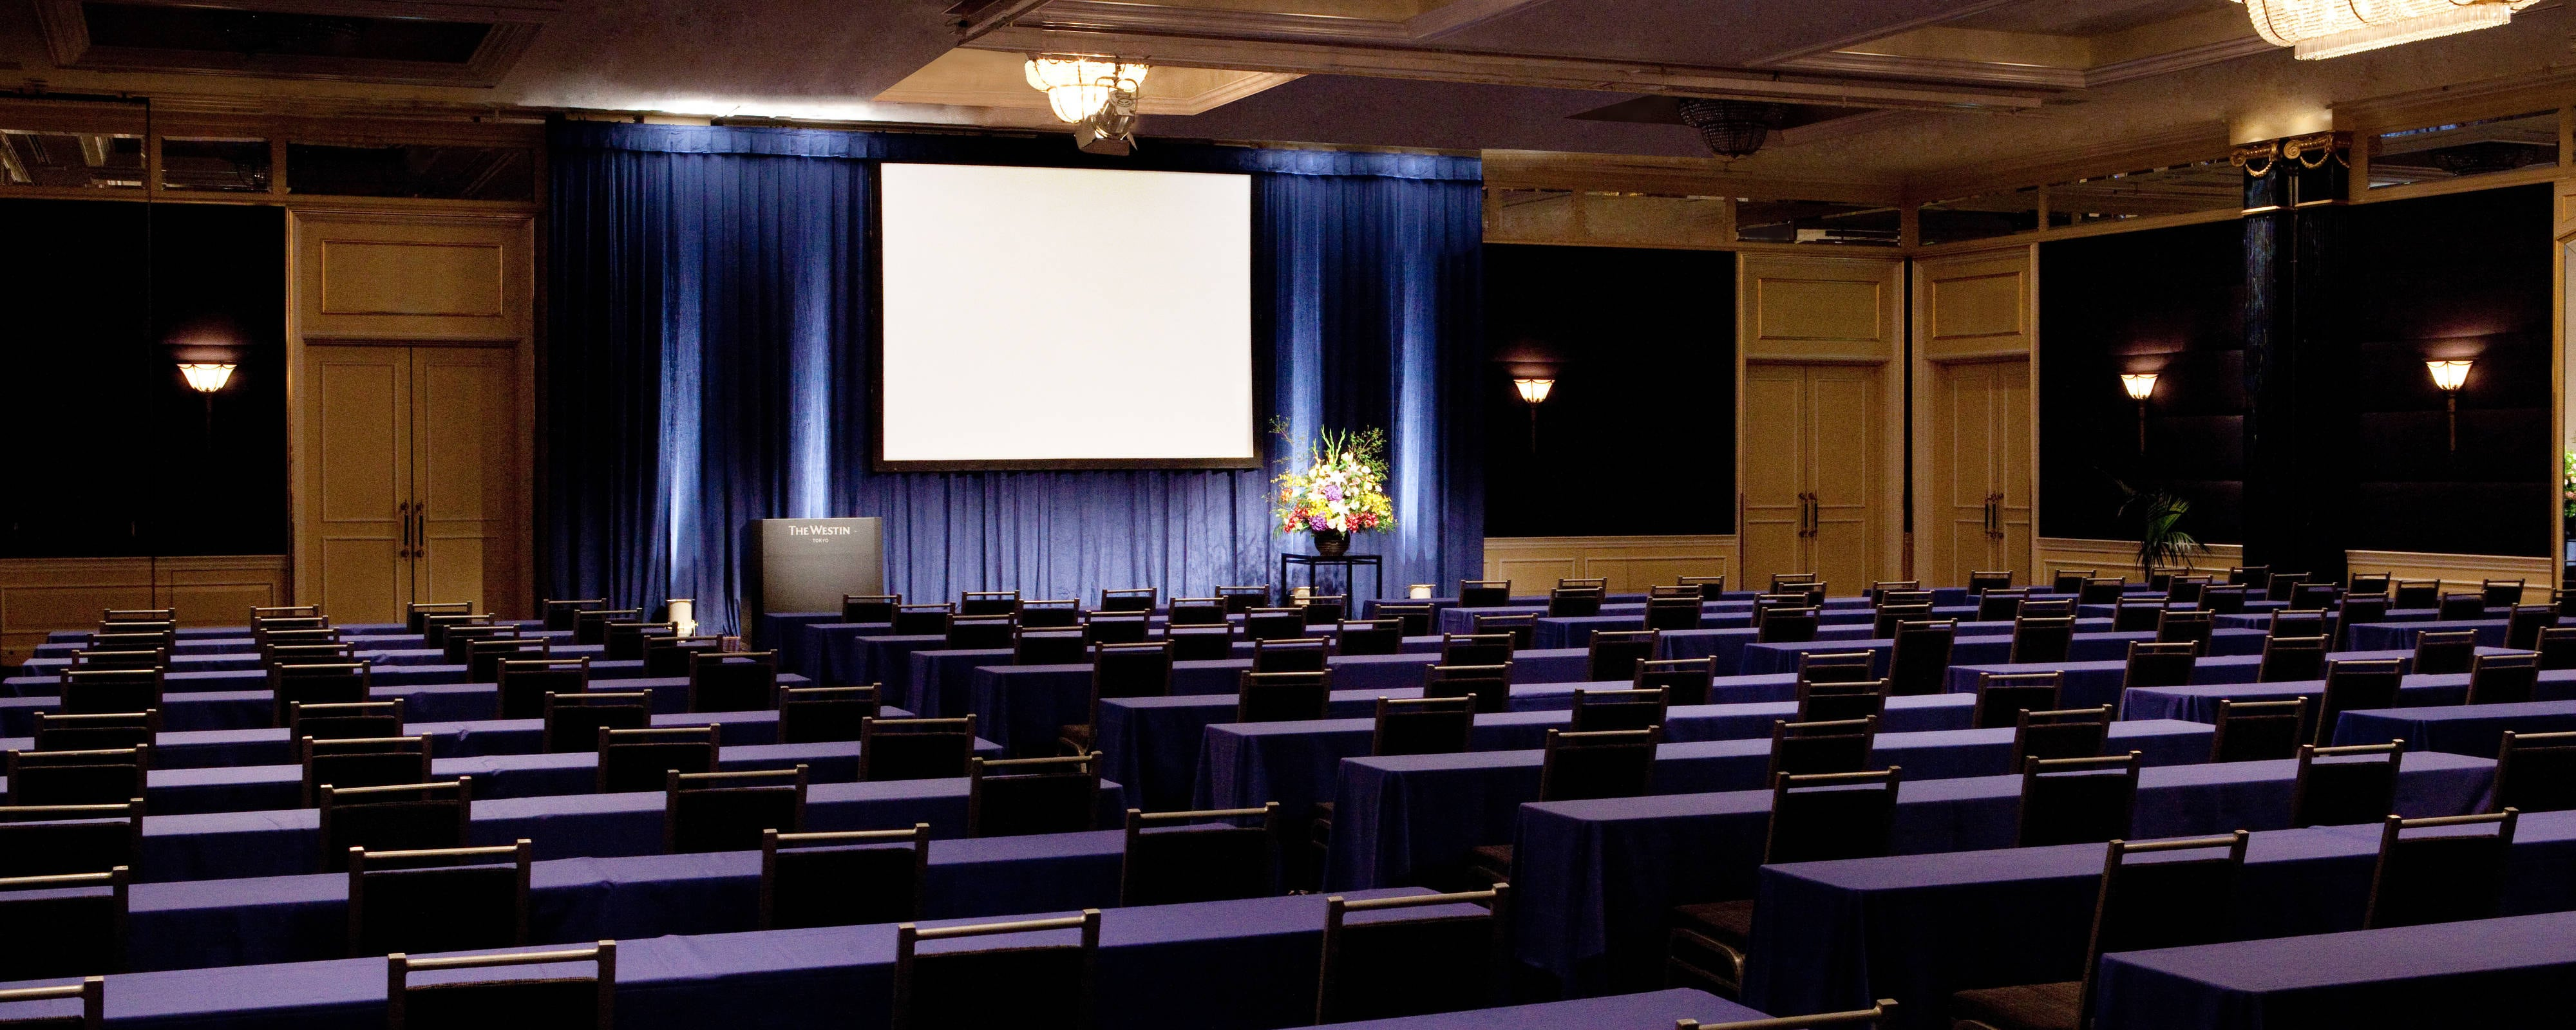 Meeting Room Venues | The Westin Tokyo - Offer Premier Event